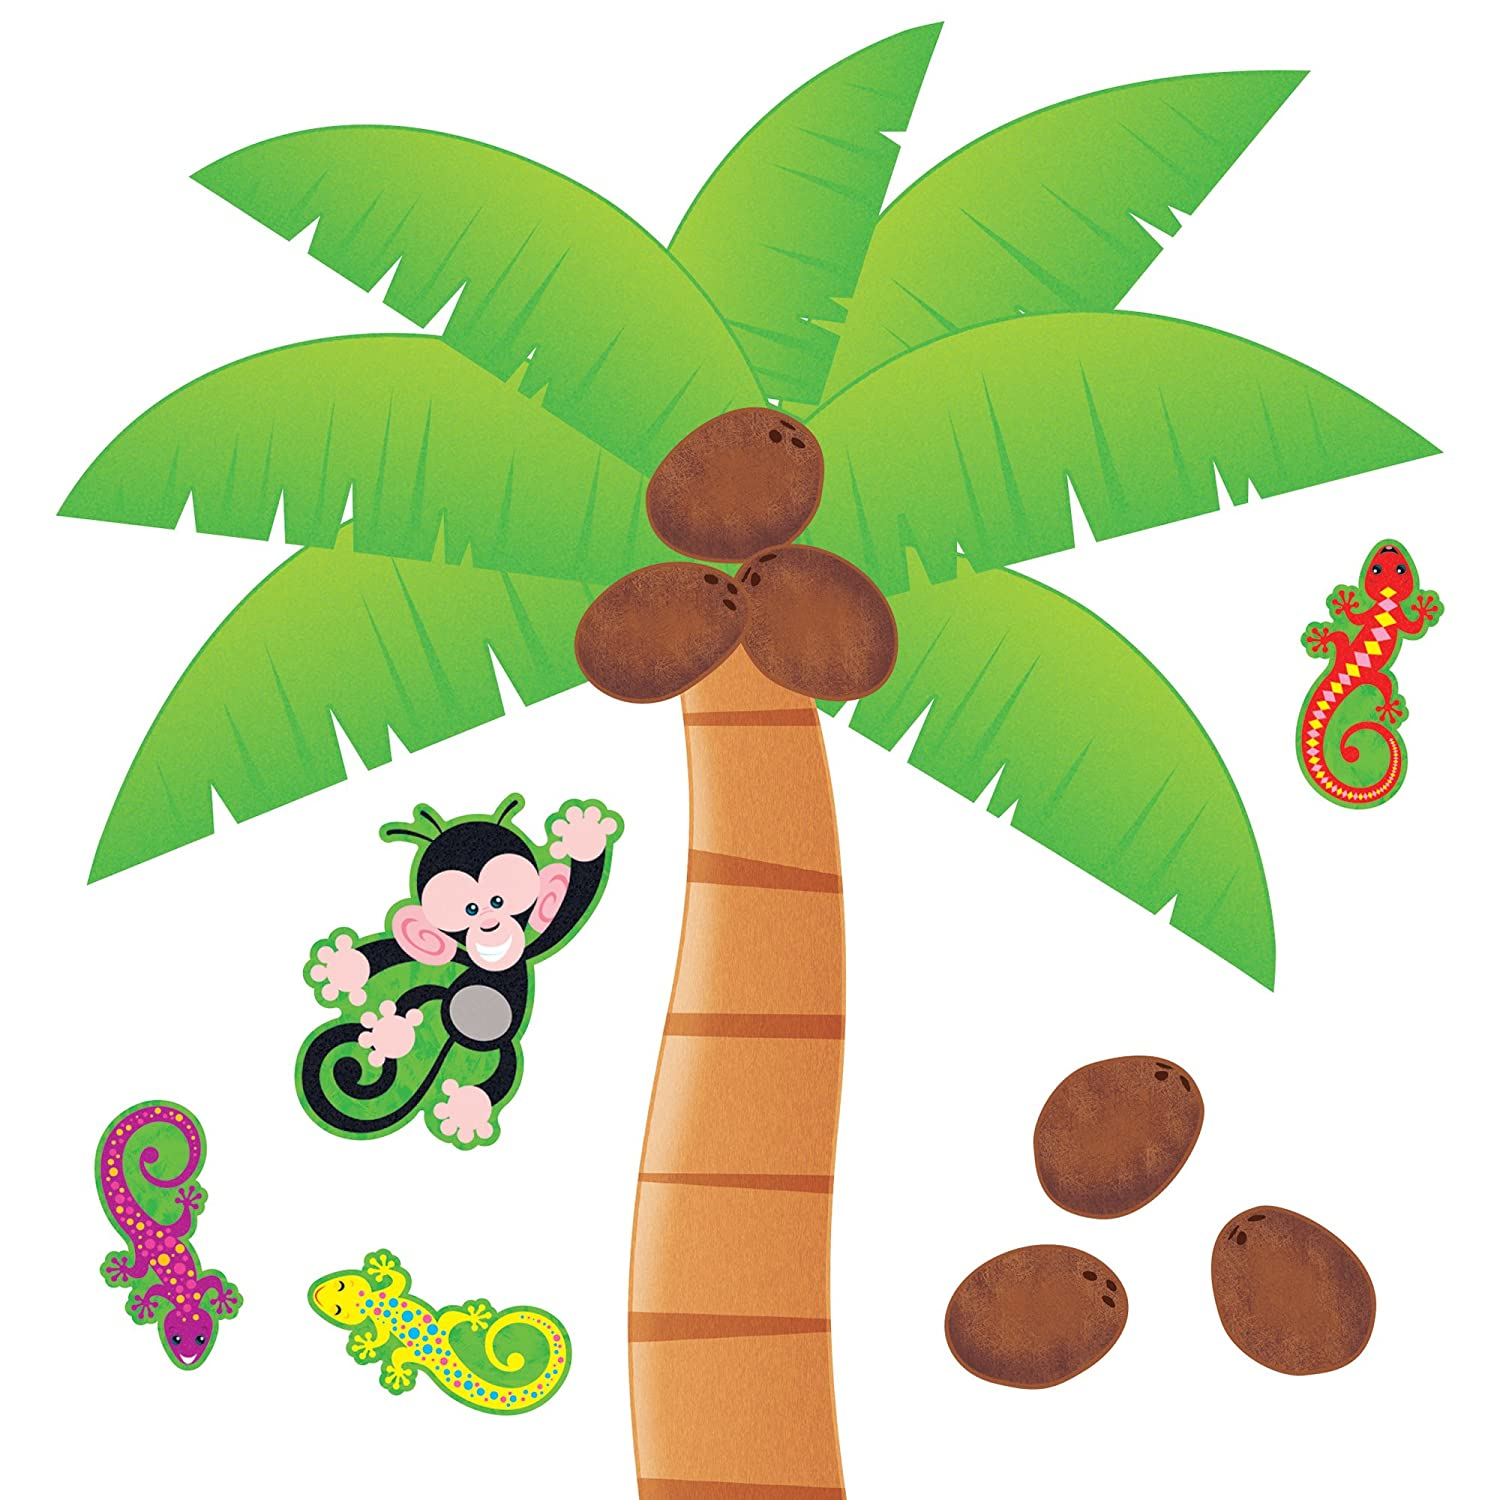 image about Chicka Chicka Boom Boom Tree Printable referred to as Palm Tree Bulletin Board Mounted